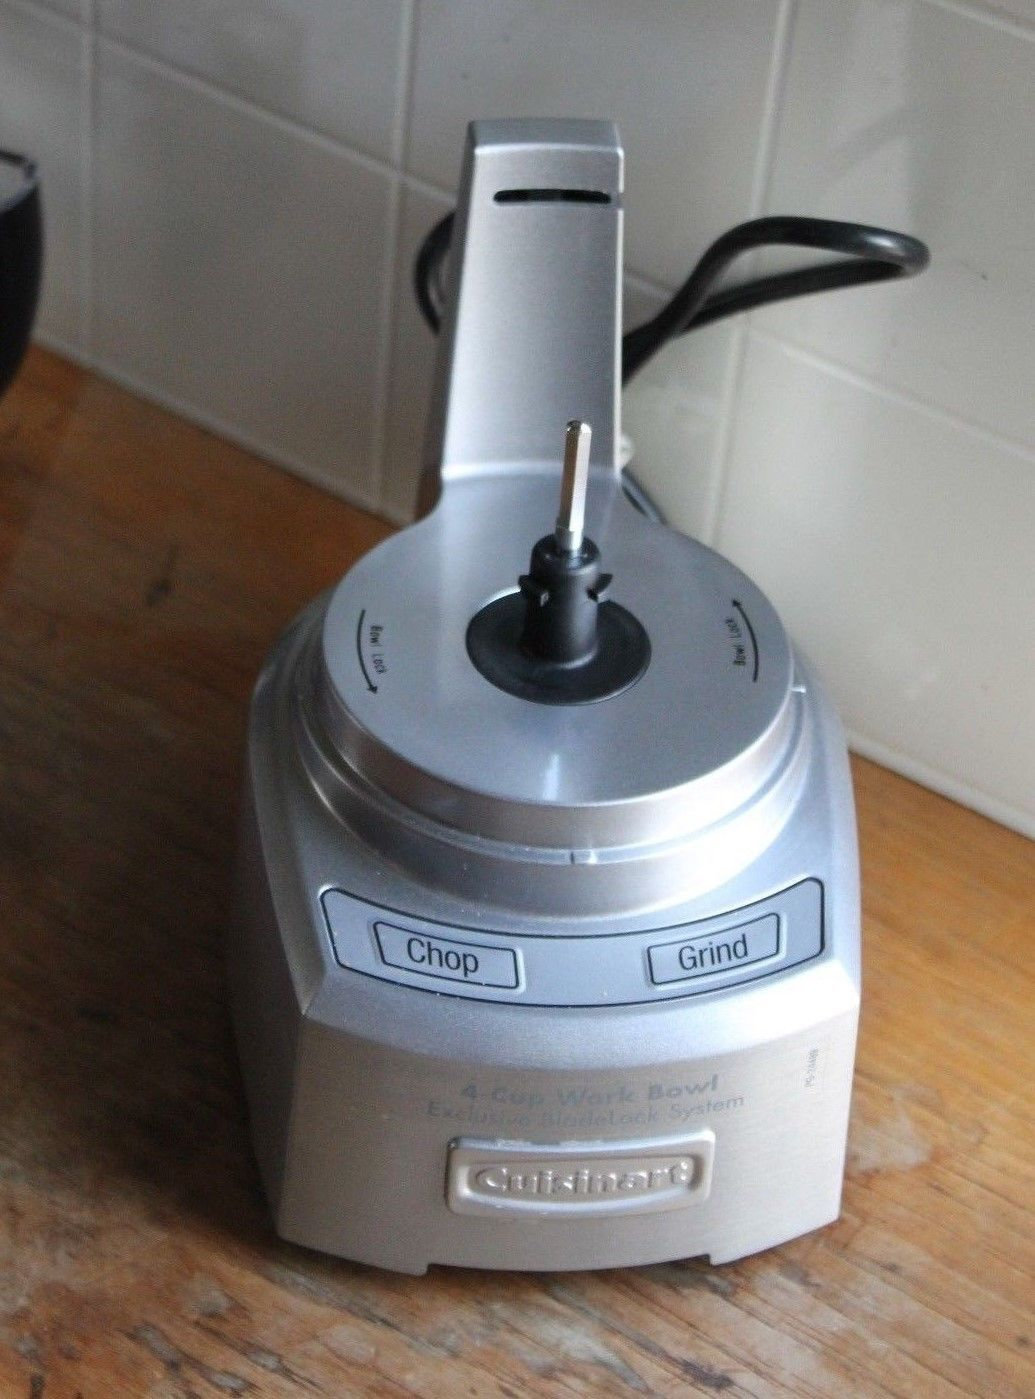 CUISINART MINI PREP 4-CUP FOOD PROCESSOR BRUSHED STAINLESS BASE CH-4DC CHOPPER